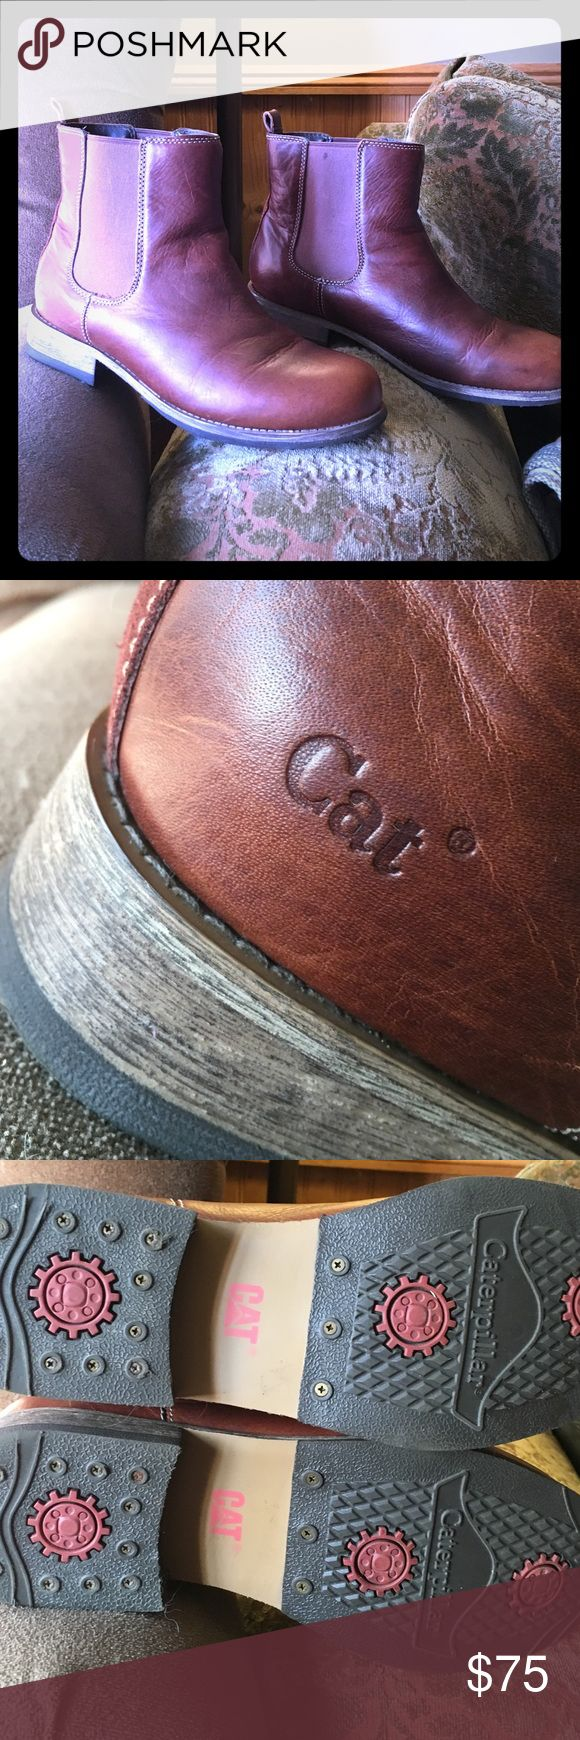 Caterpillar brand Chelsea boots☀️️ 9 These are a like new caterpillar brand Chelsea boots like I said like new maybe worn 1 time she was not sure if she just wore them around the house 🌻 they are a size 9 or euro 40 ❤️they are beautiful leather nice wooden heal☀️️☀️️☀️️☀️️☀️️☀️️☀️️please note size is a US size 9 UK size 7 or a euro size 40 it is a larger nine Caterpillar Shoes Ankle Boots & Booties